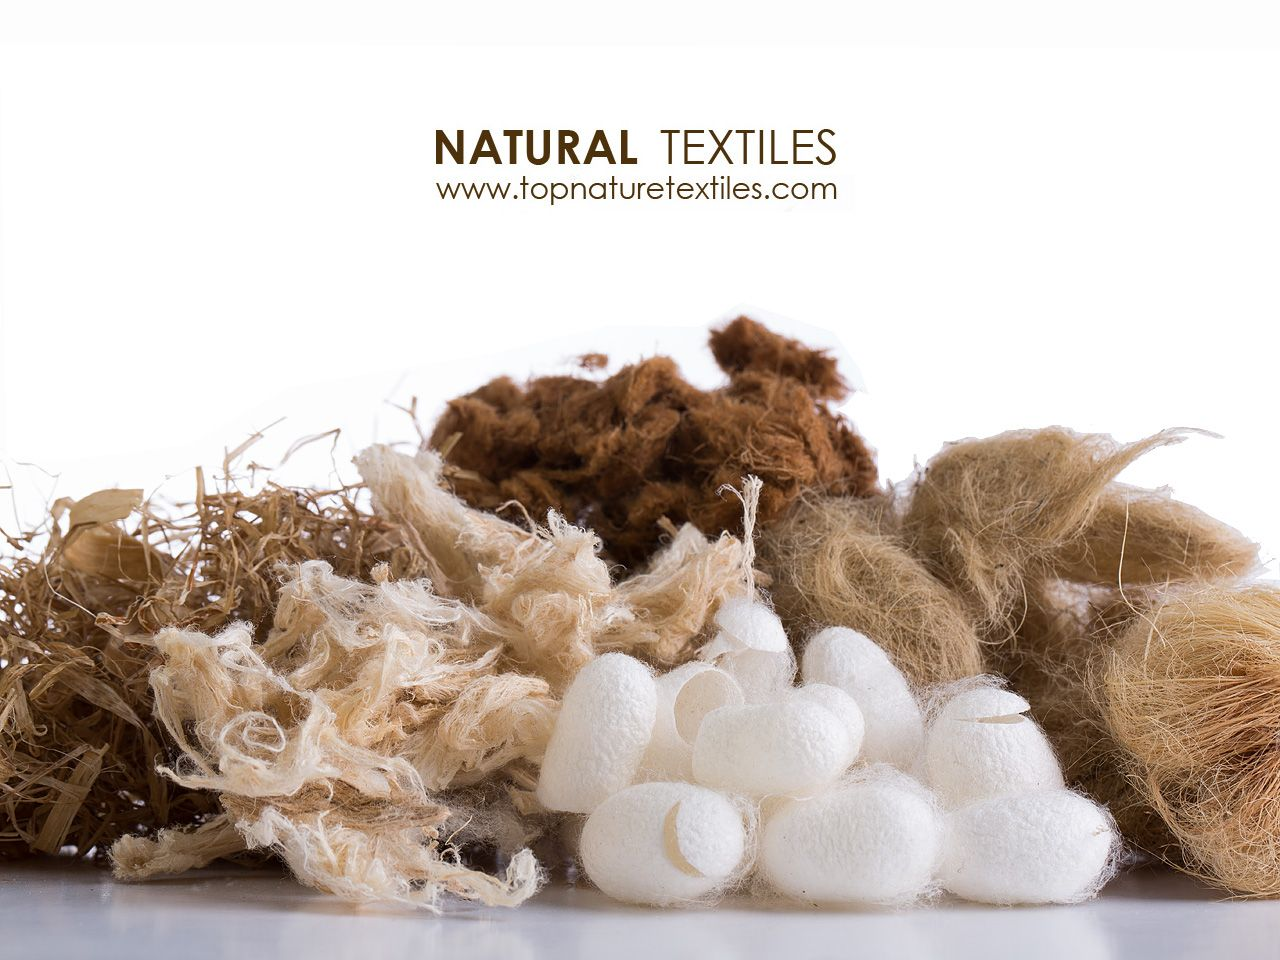 Threads And Fibers Mail: 11. Fabric Samples: Natural Fiber (Cotton, Linen And Wool